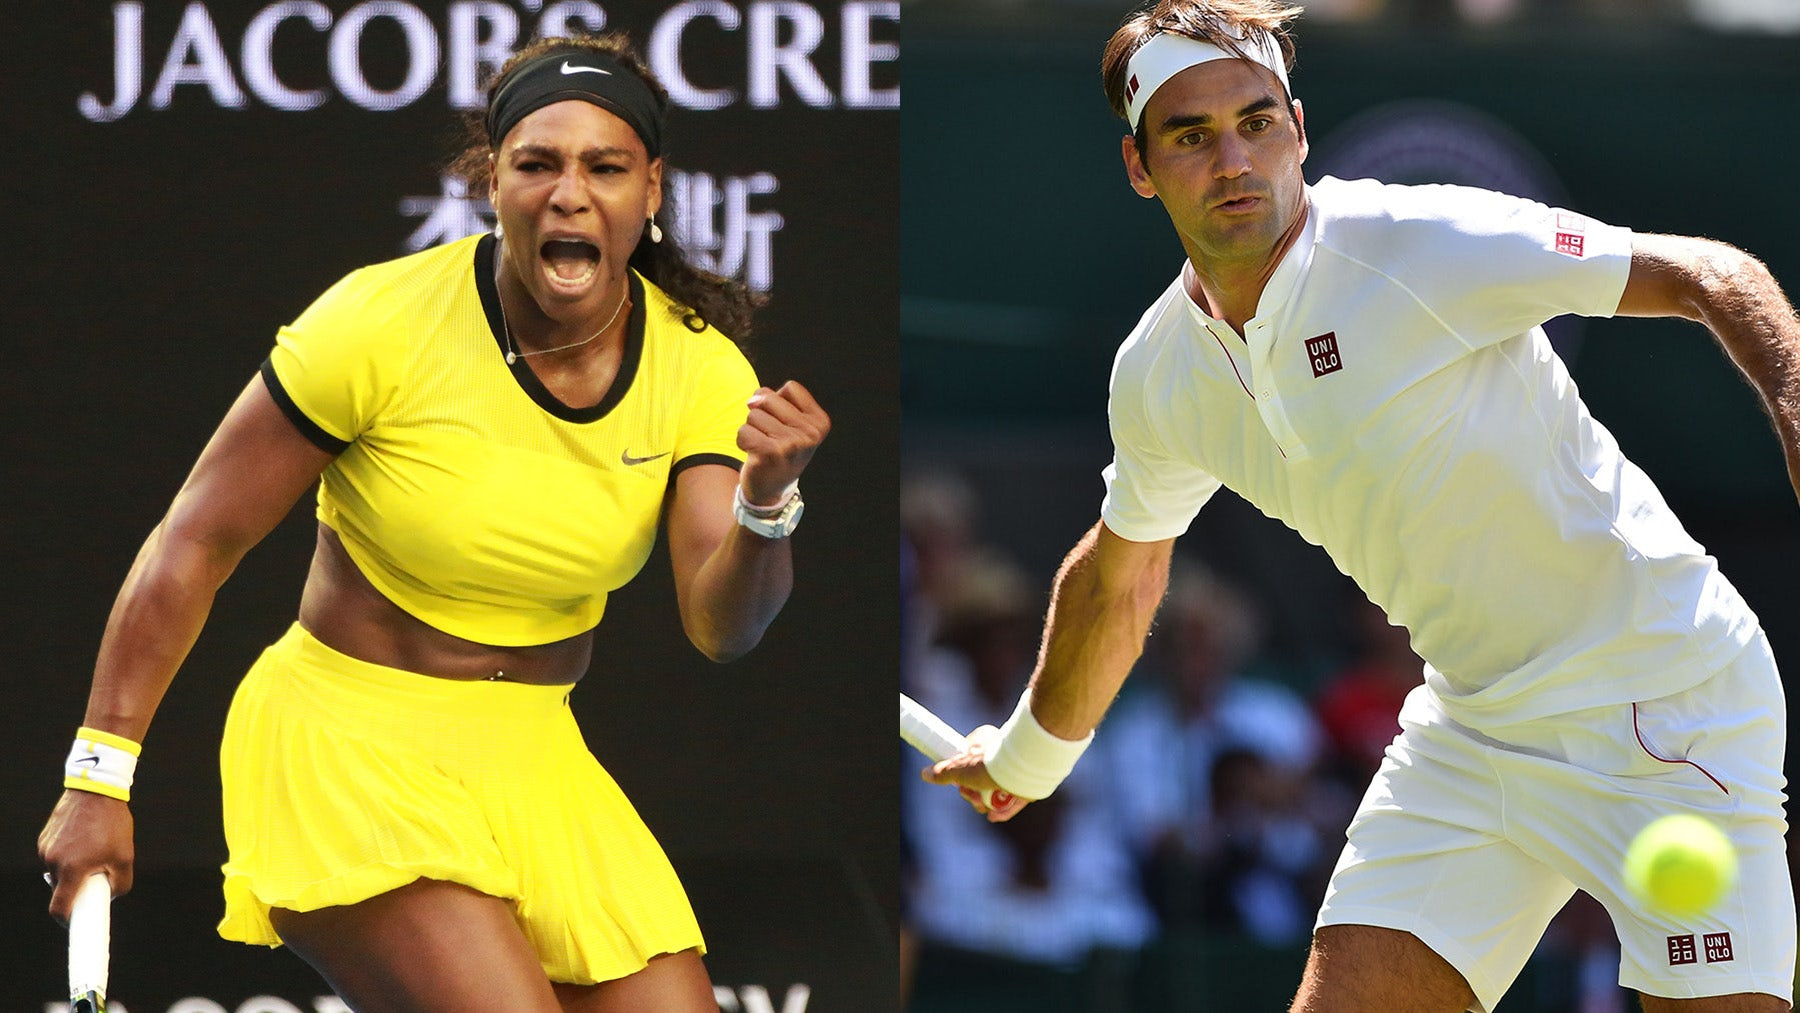 Serena Williams and Roger Federer | Source: Shutterstock, Getty